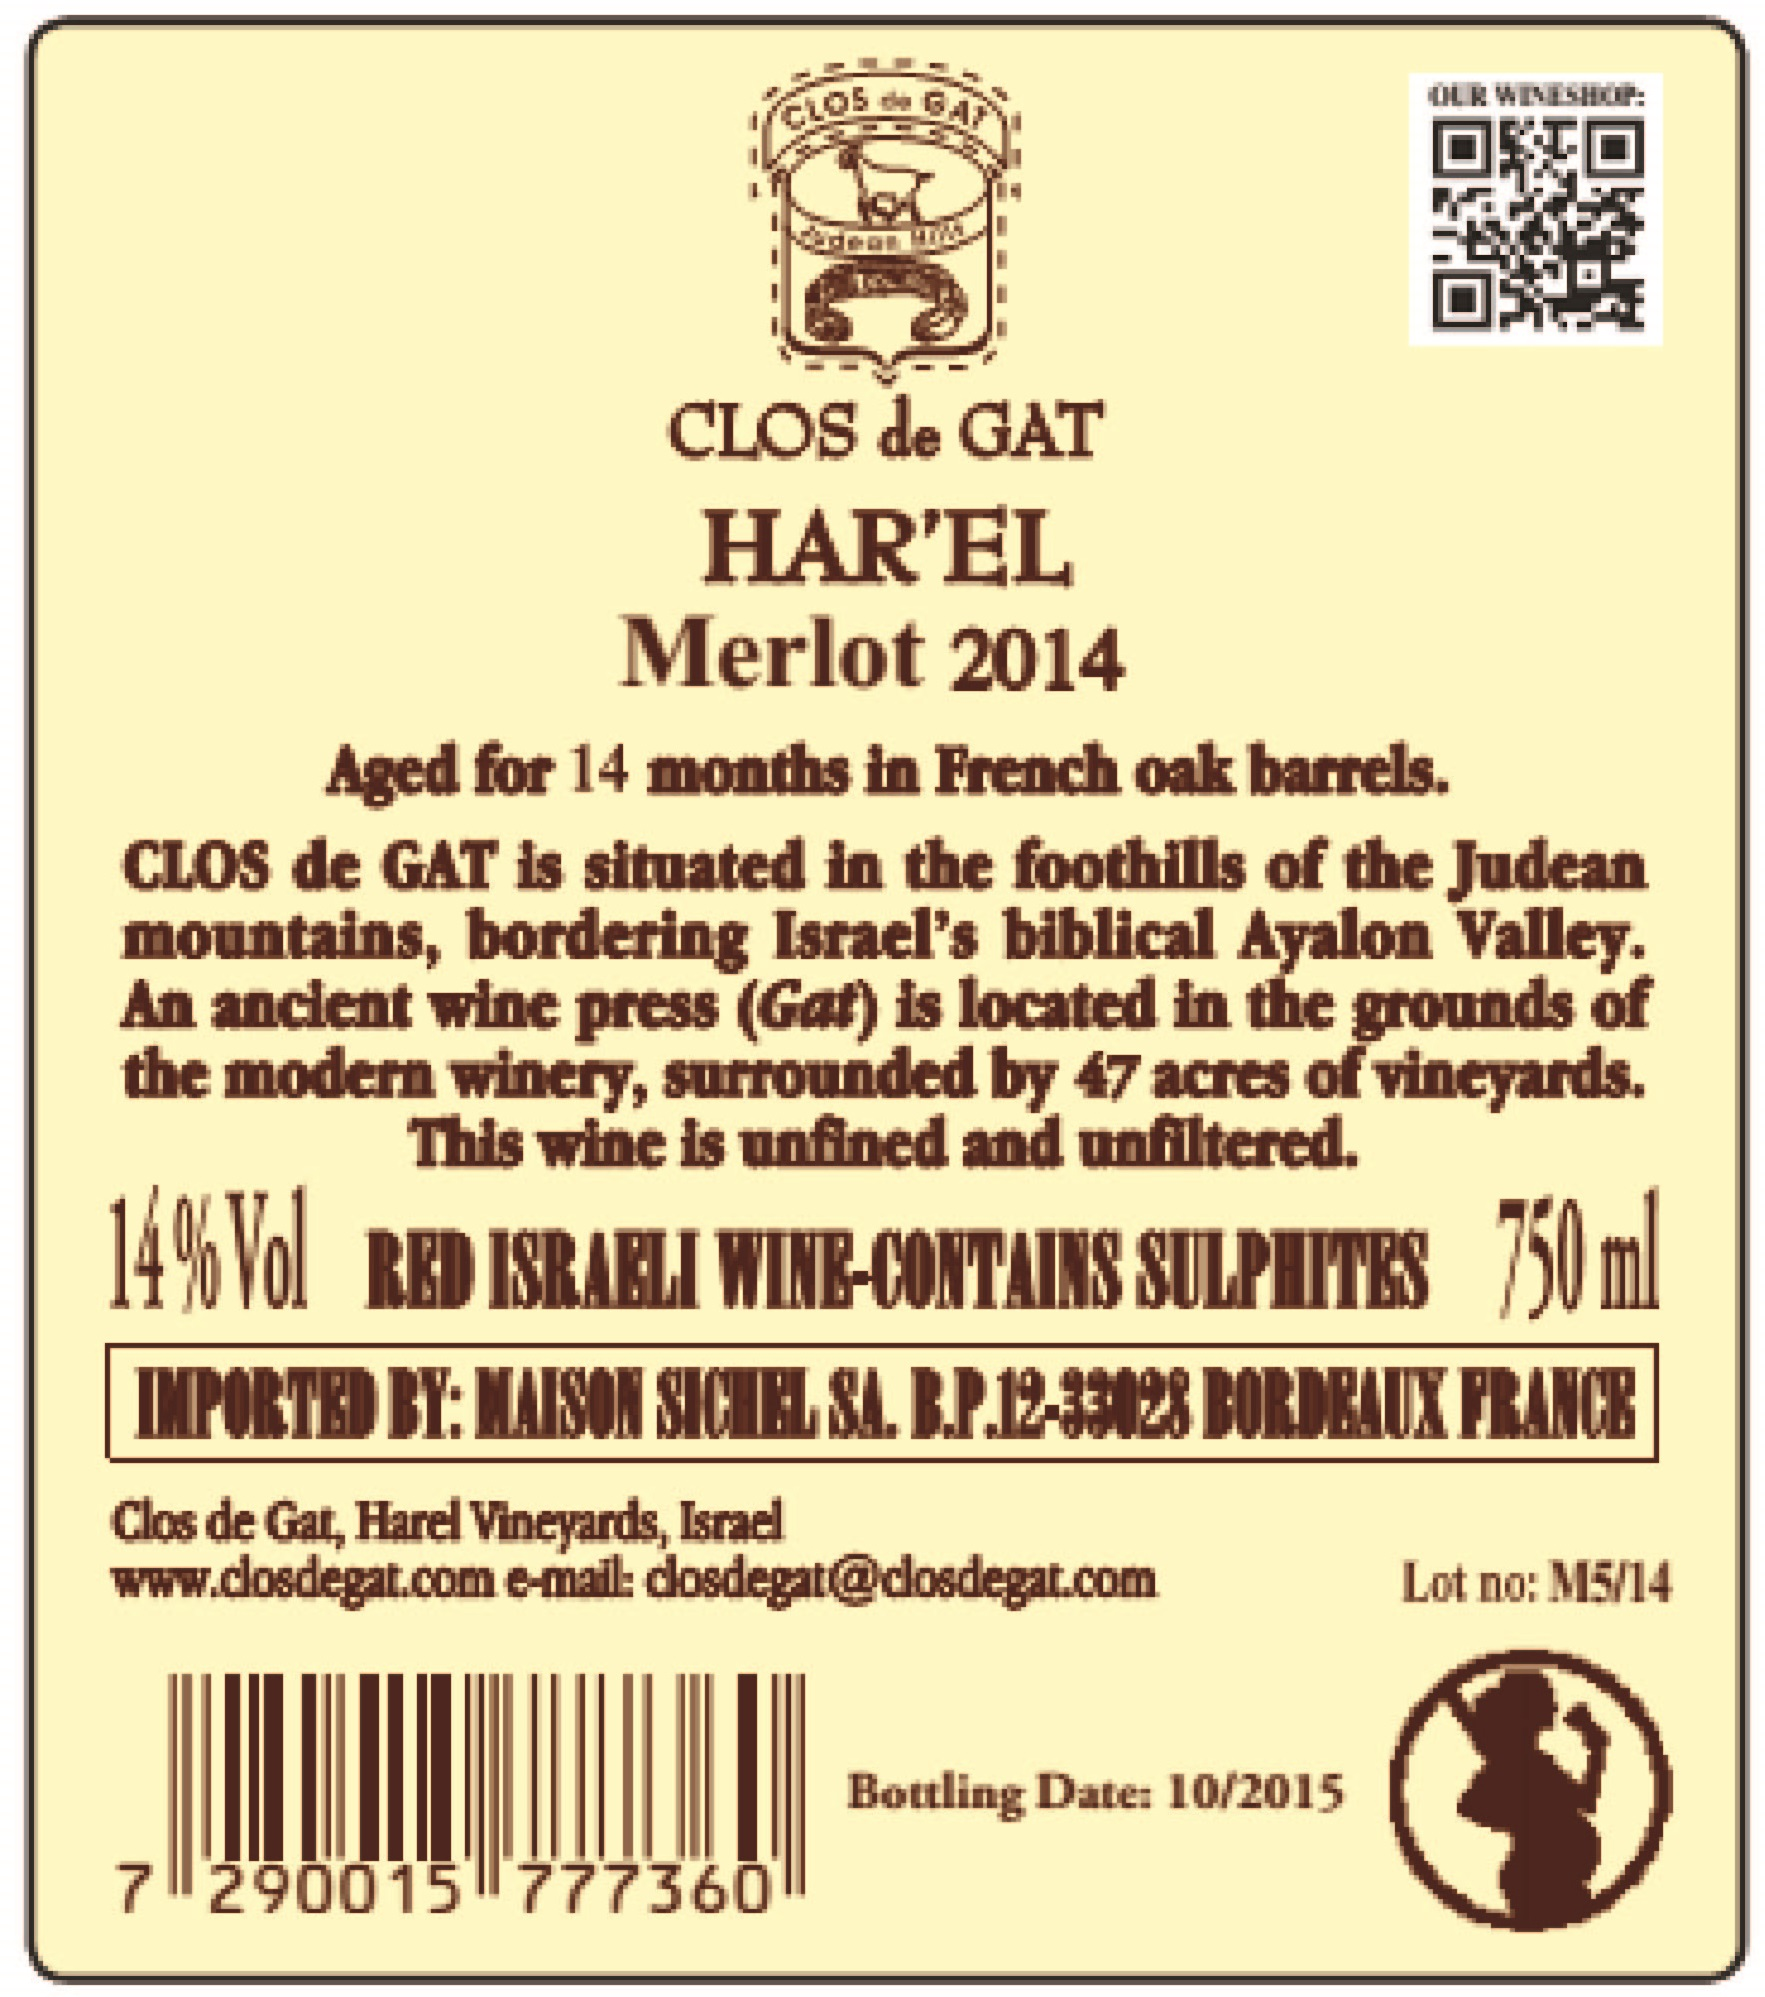 Clos de Gat - Har'el - Merlot  Wine from Israël Red 2014